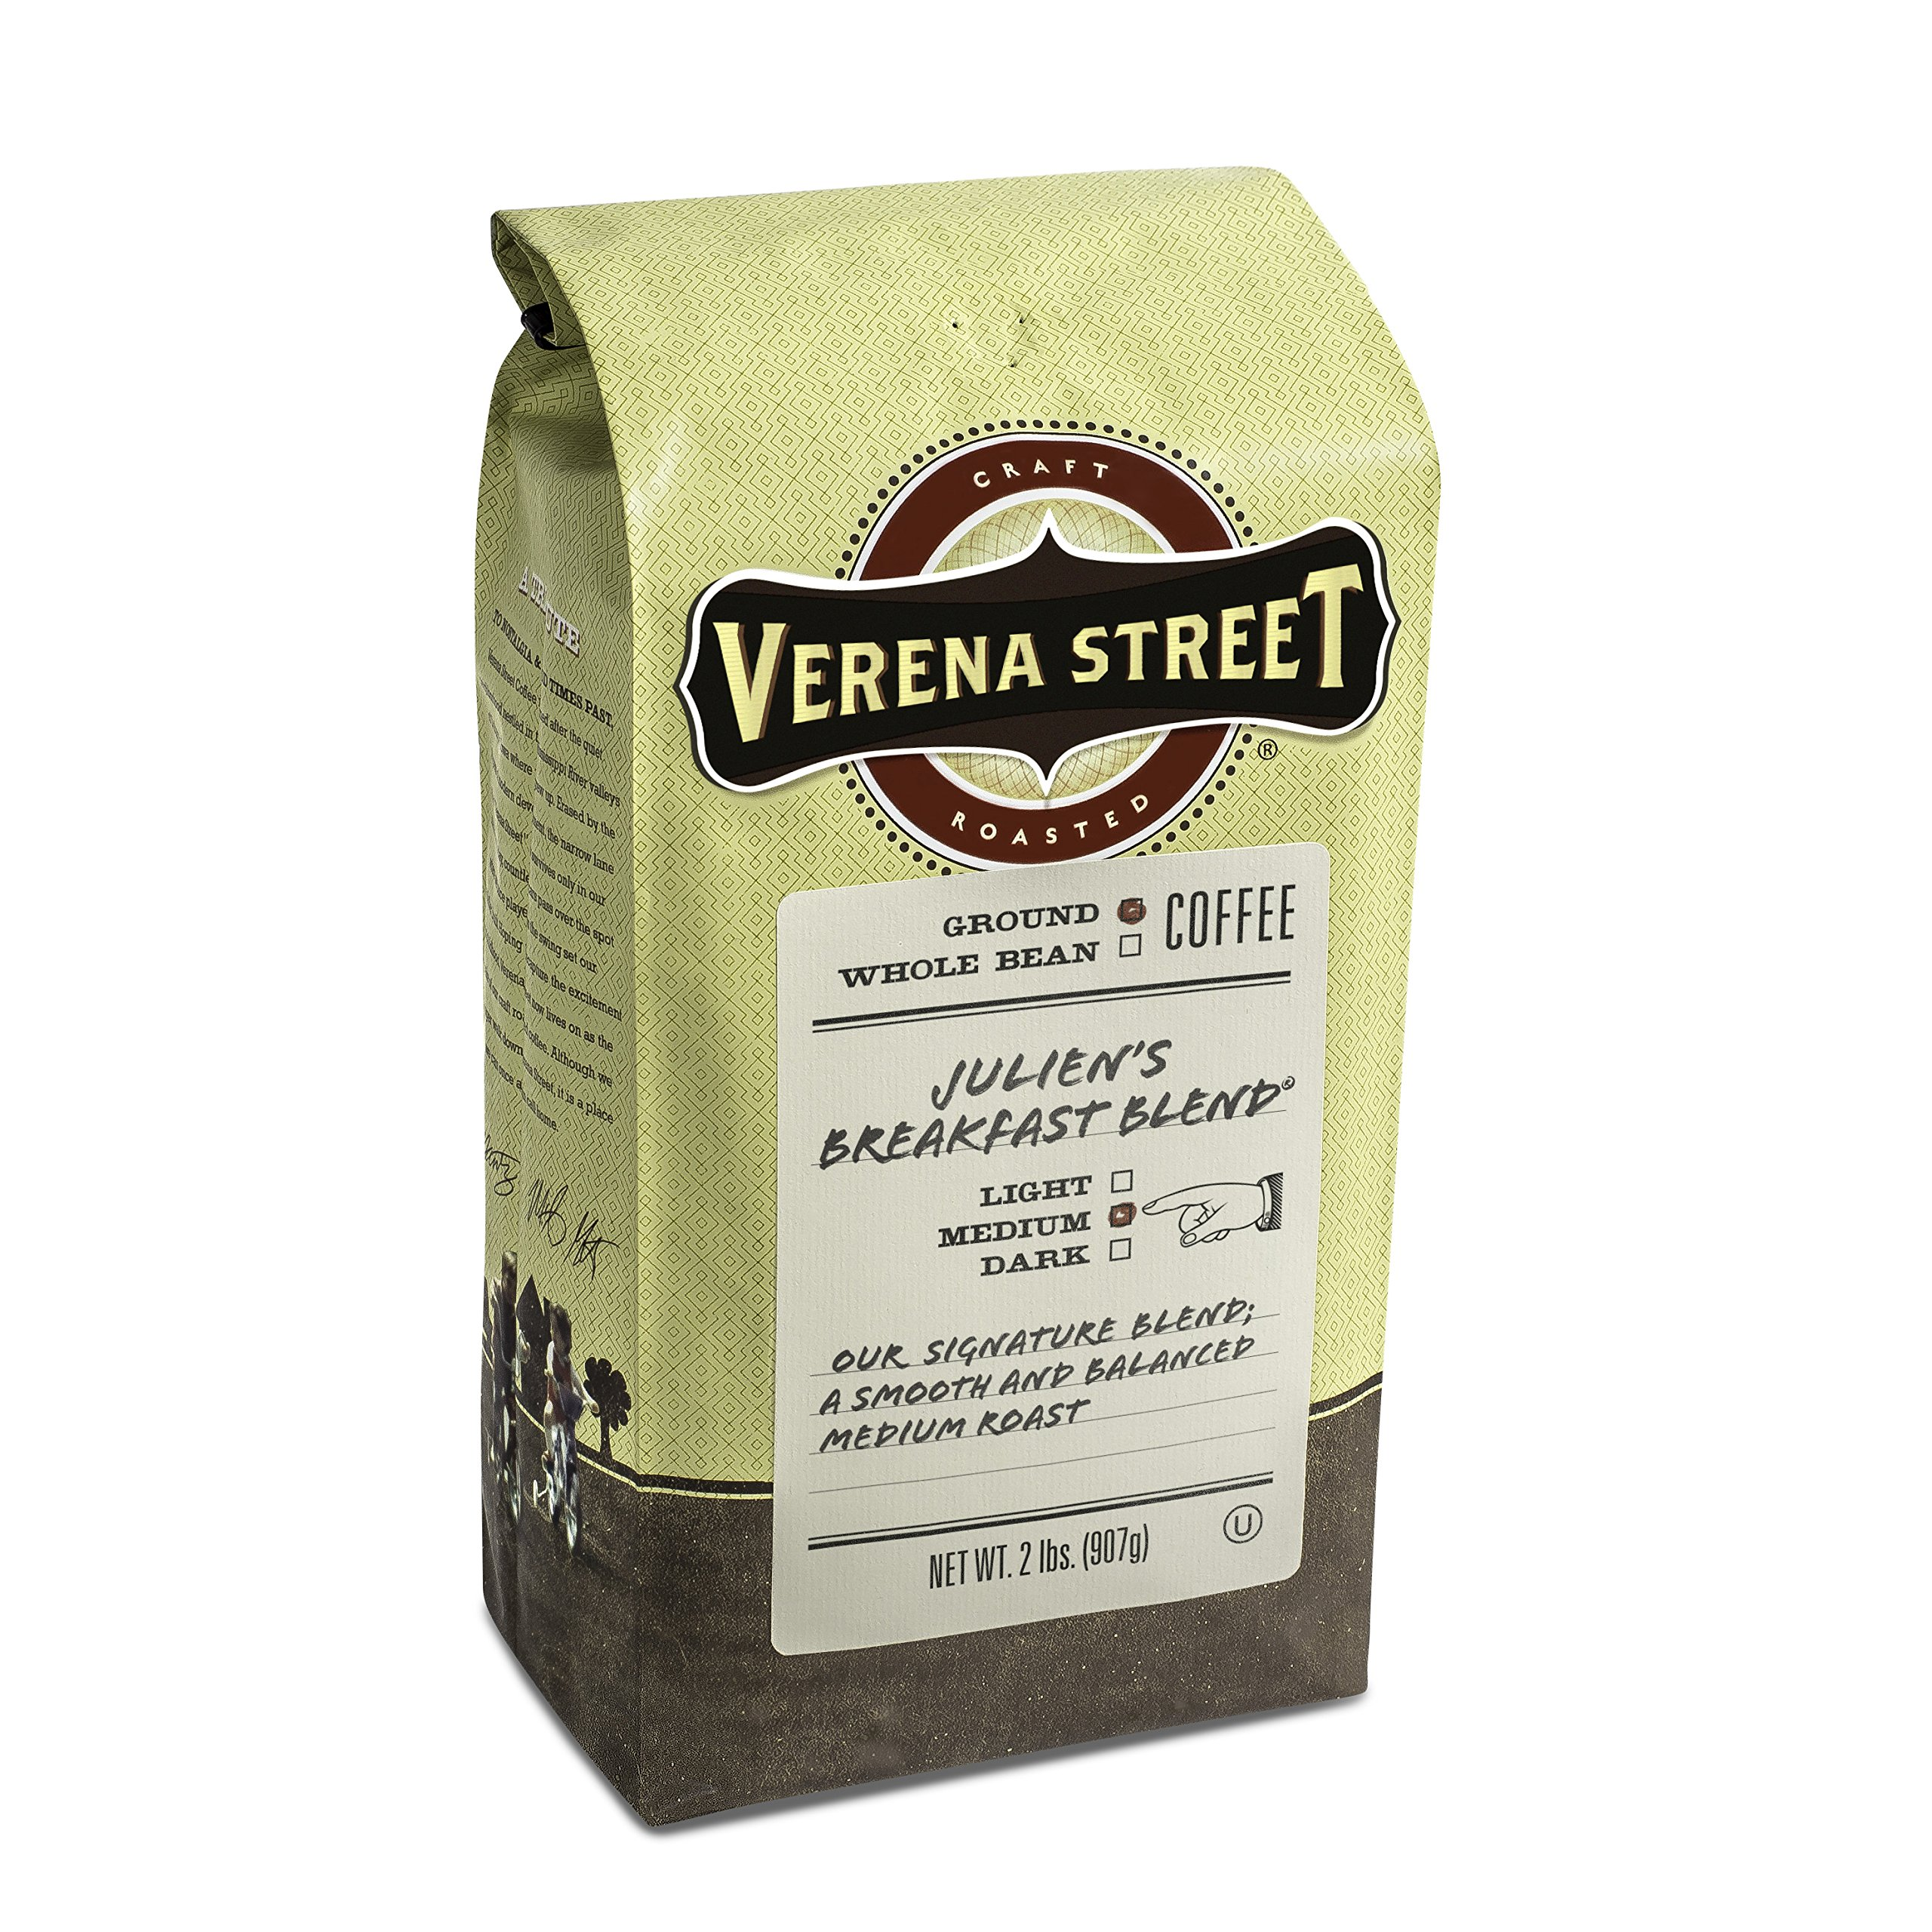 Verena Street 2 Pound Ground Coffee, Medium Roast, Julien's Breakfast Blend, Rainforest Alliance Certified Arabica Coffee